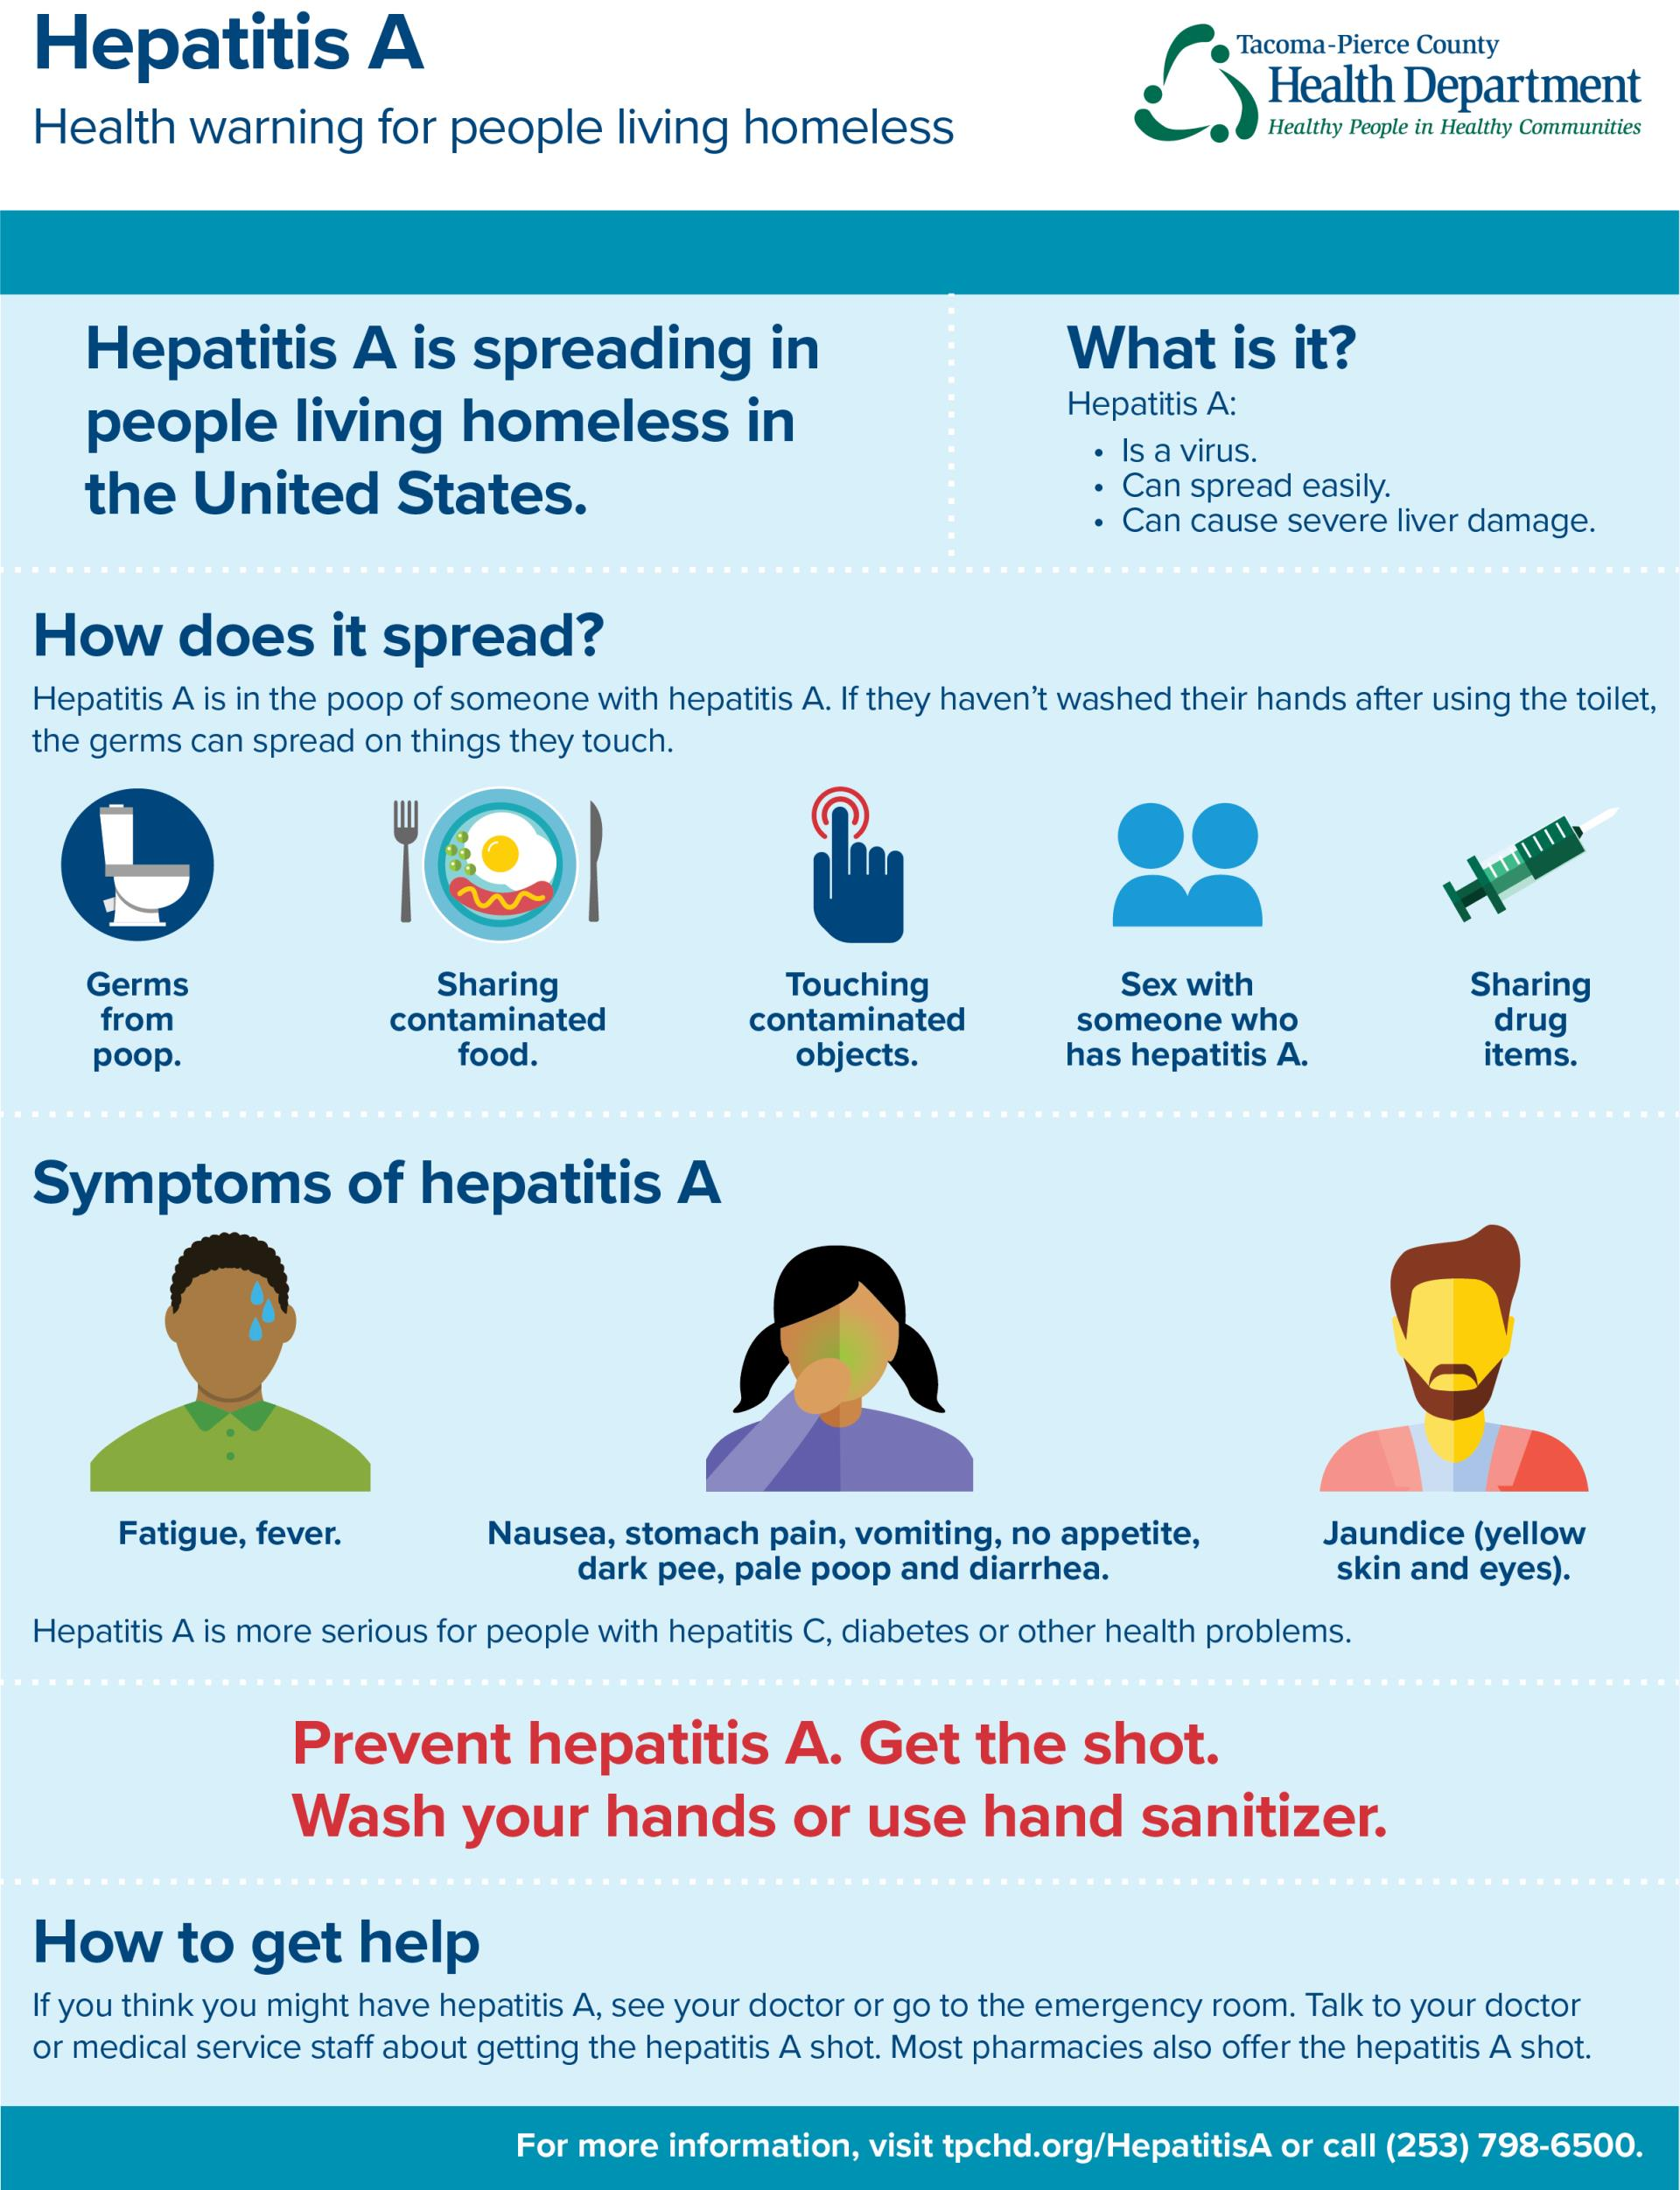 Hepatitis A: Health warning for people living homeless. Hep A is spreading in people living homeless in the U.S.